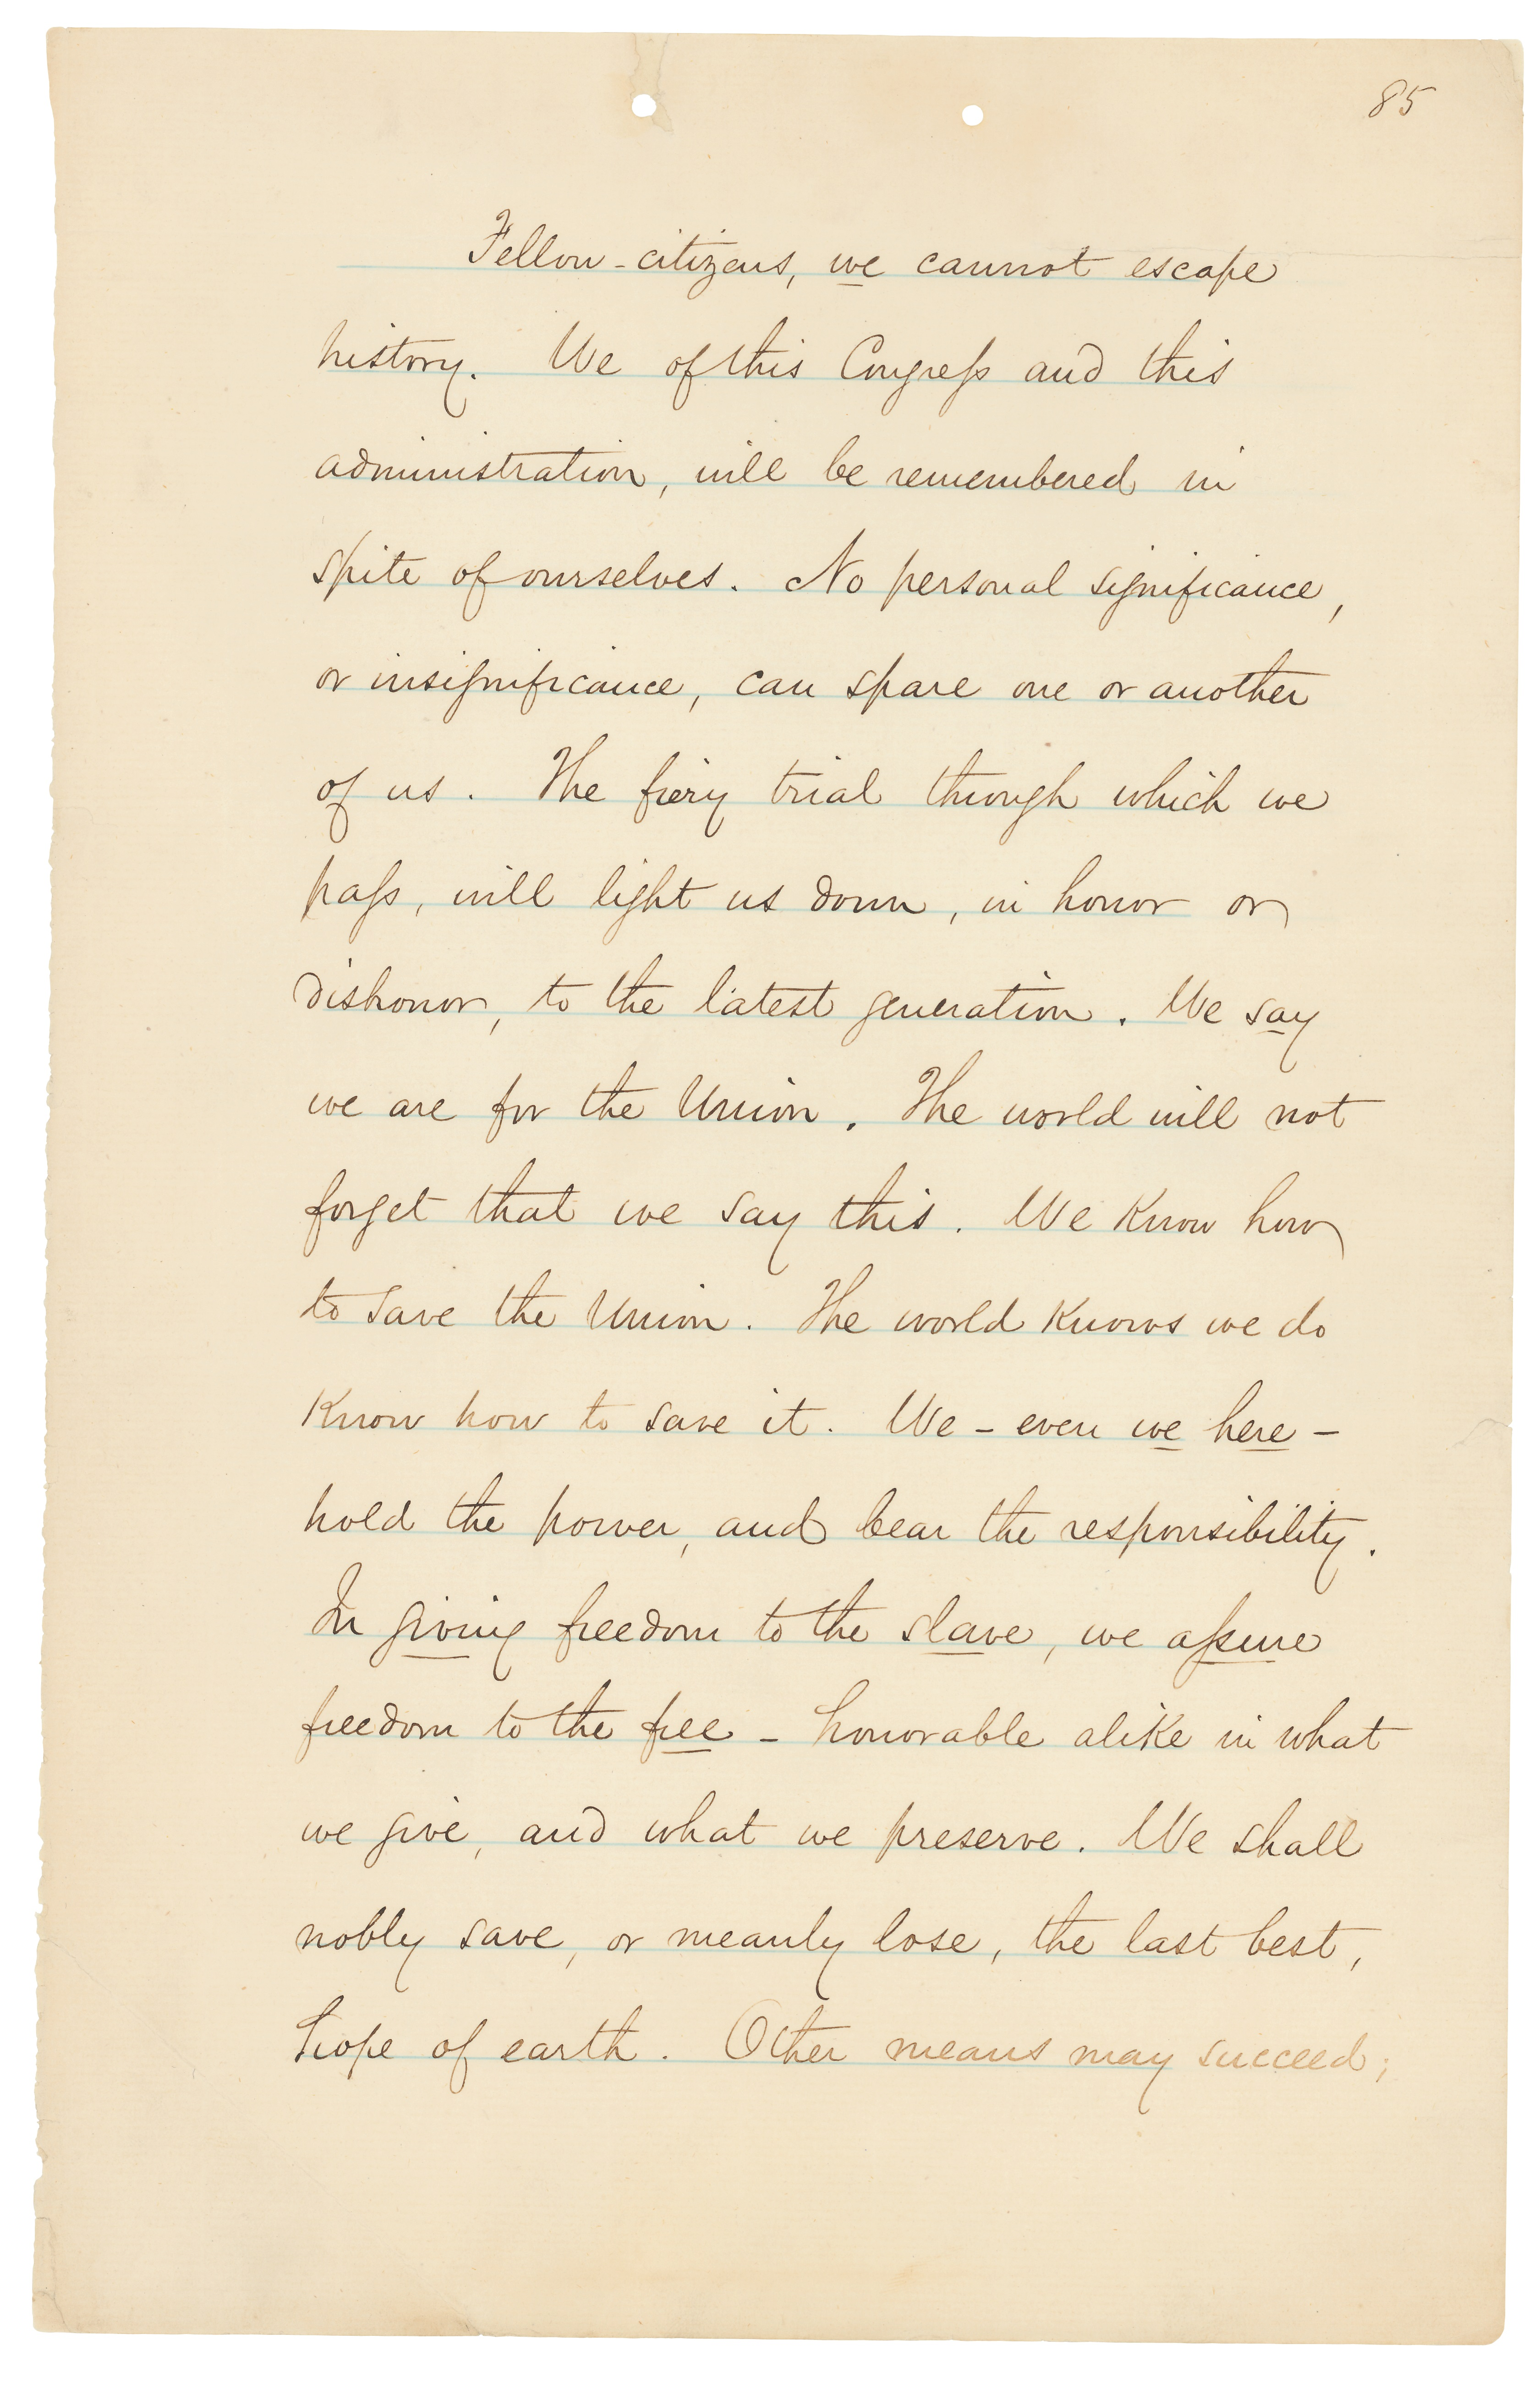 """President Abraham Lincoln's """"Fiery Trial"""" Annual Message to Congress, December 1, 1862. (Records of the U.S. House of Representatives, National Archives)"""